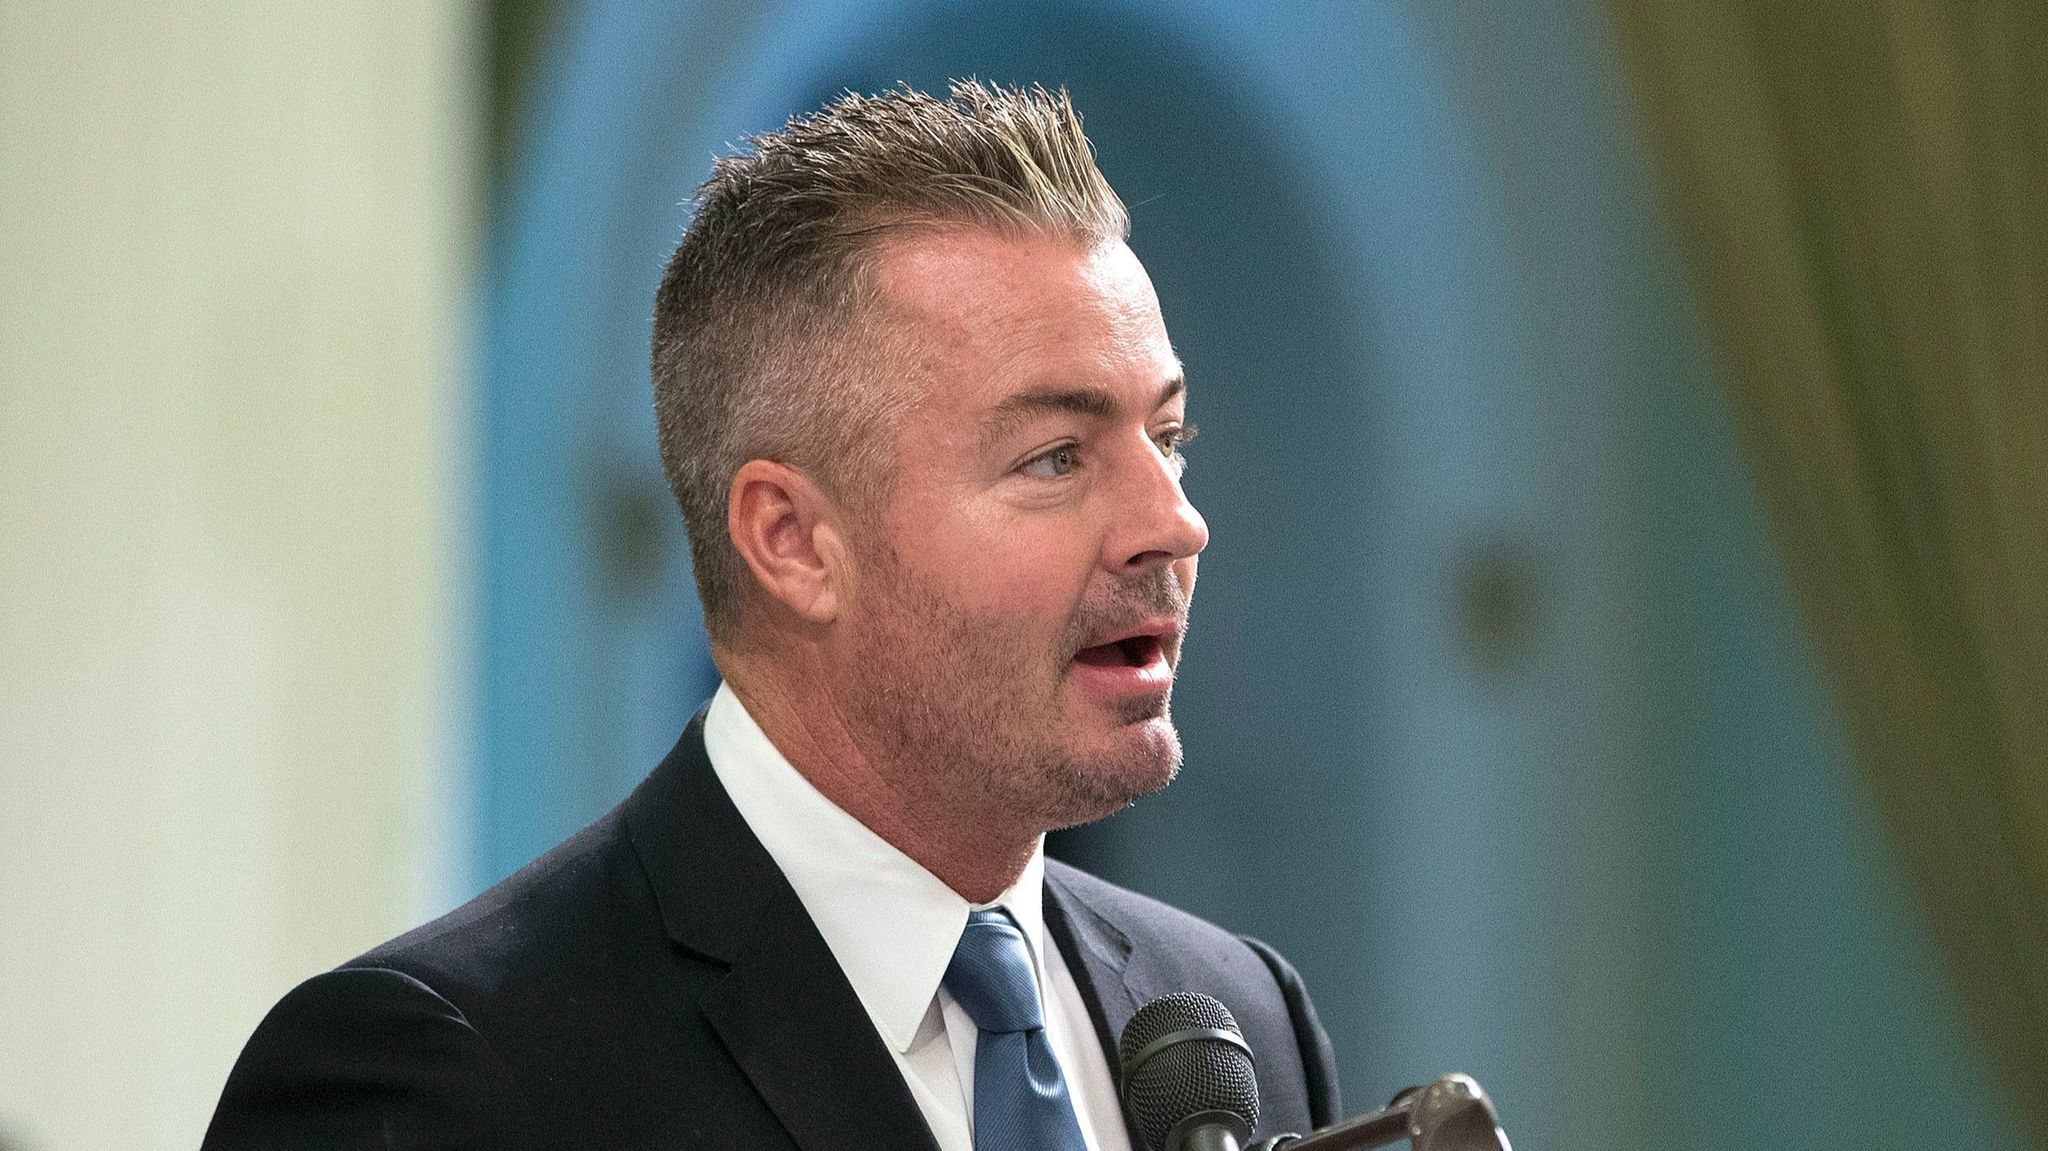 California Assemblyman Travis Allen (R-Huntington Beach) is a traditional GOP conservative and a staunch Trump supporter.